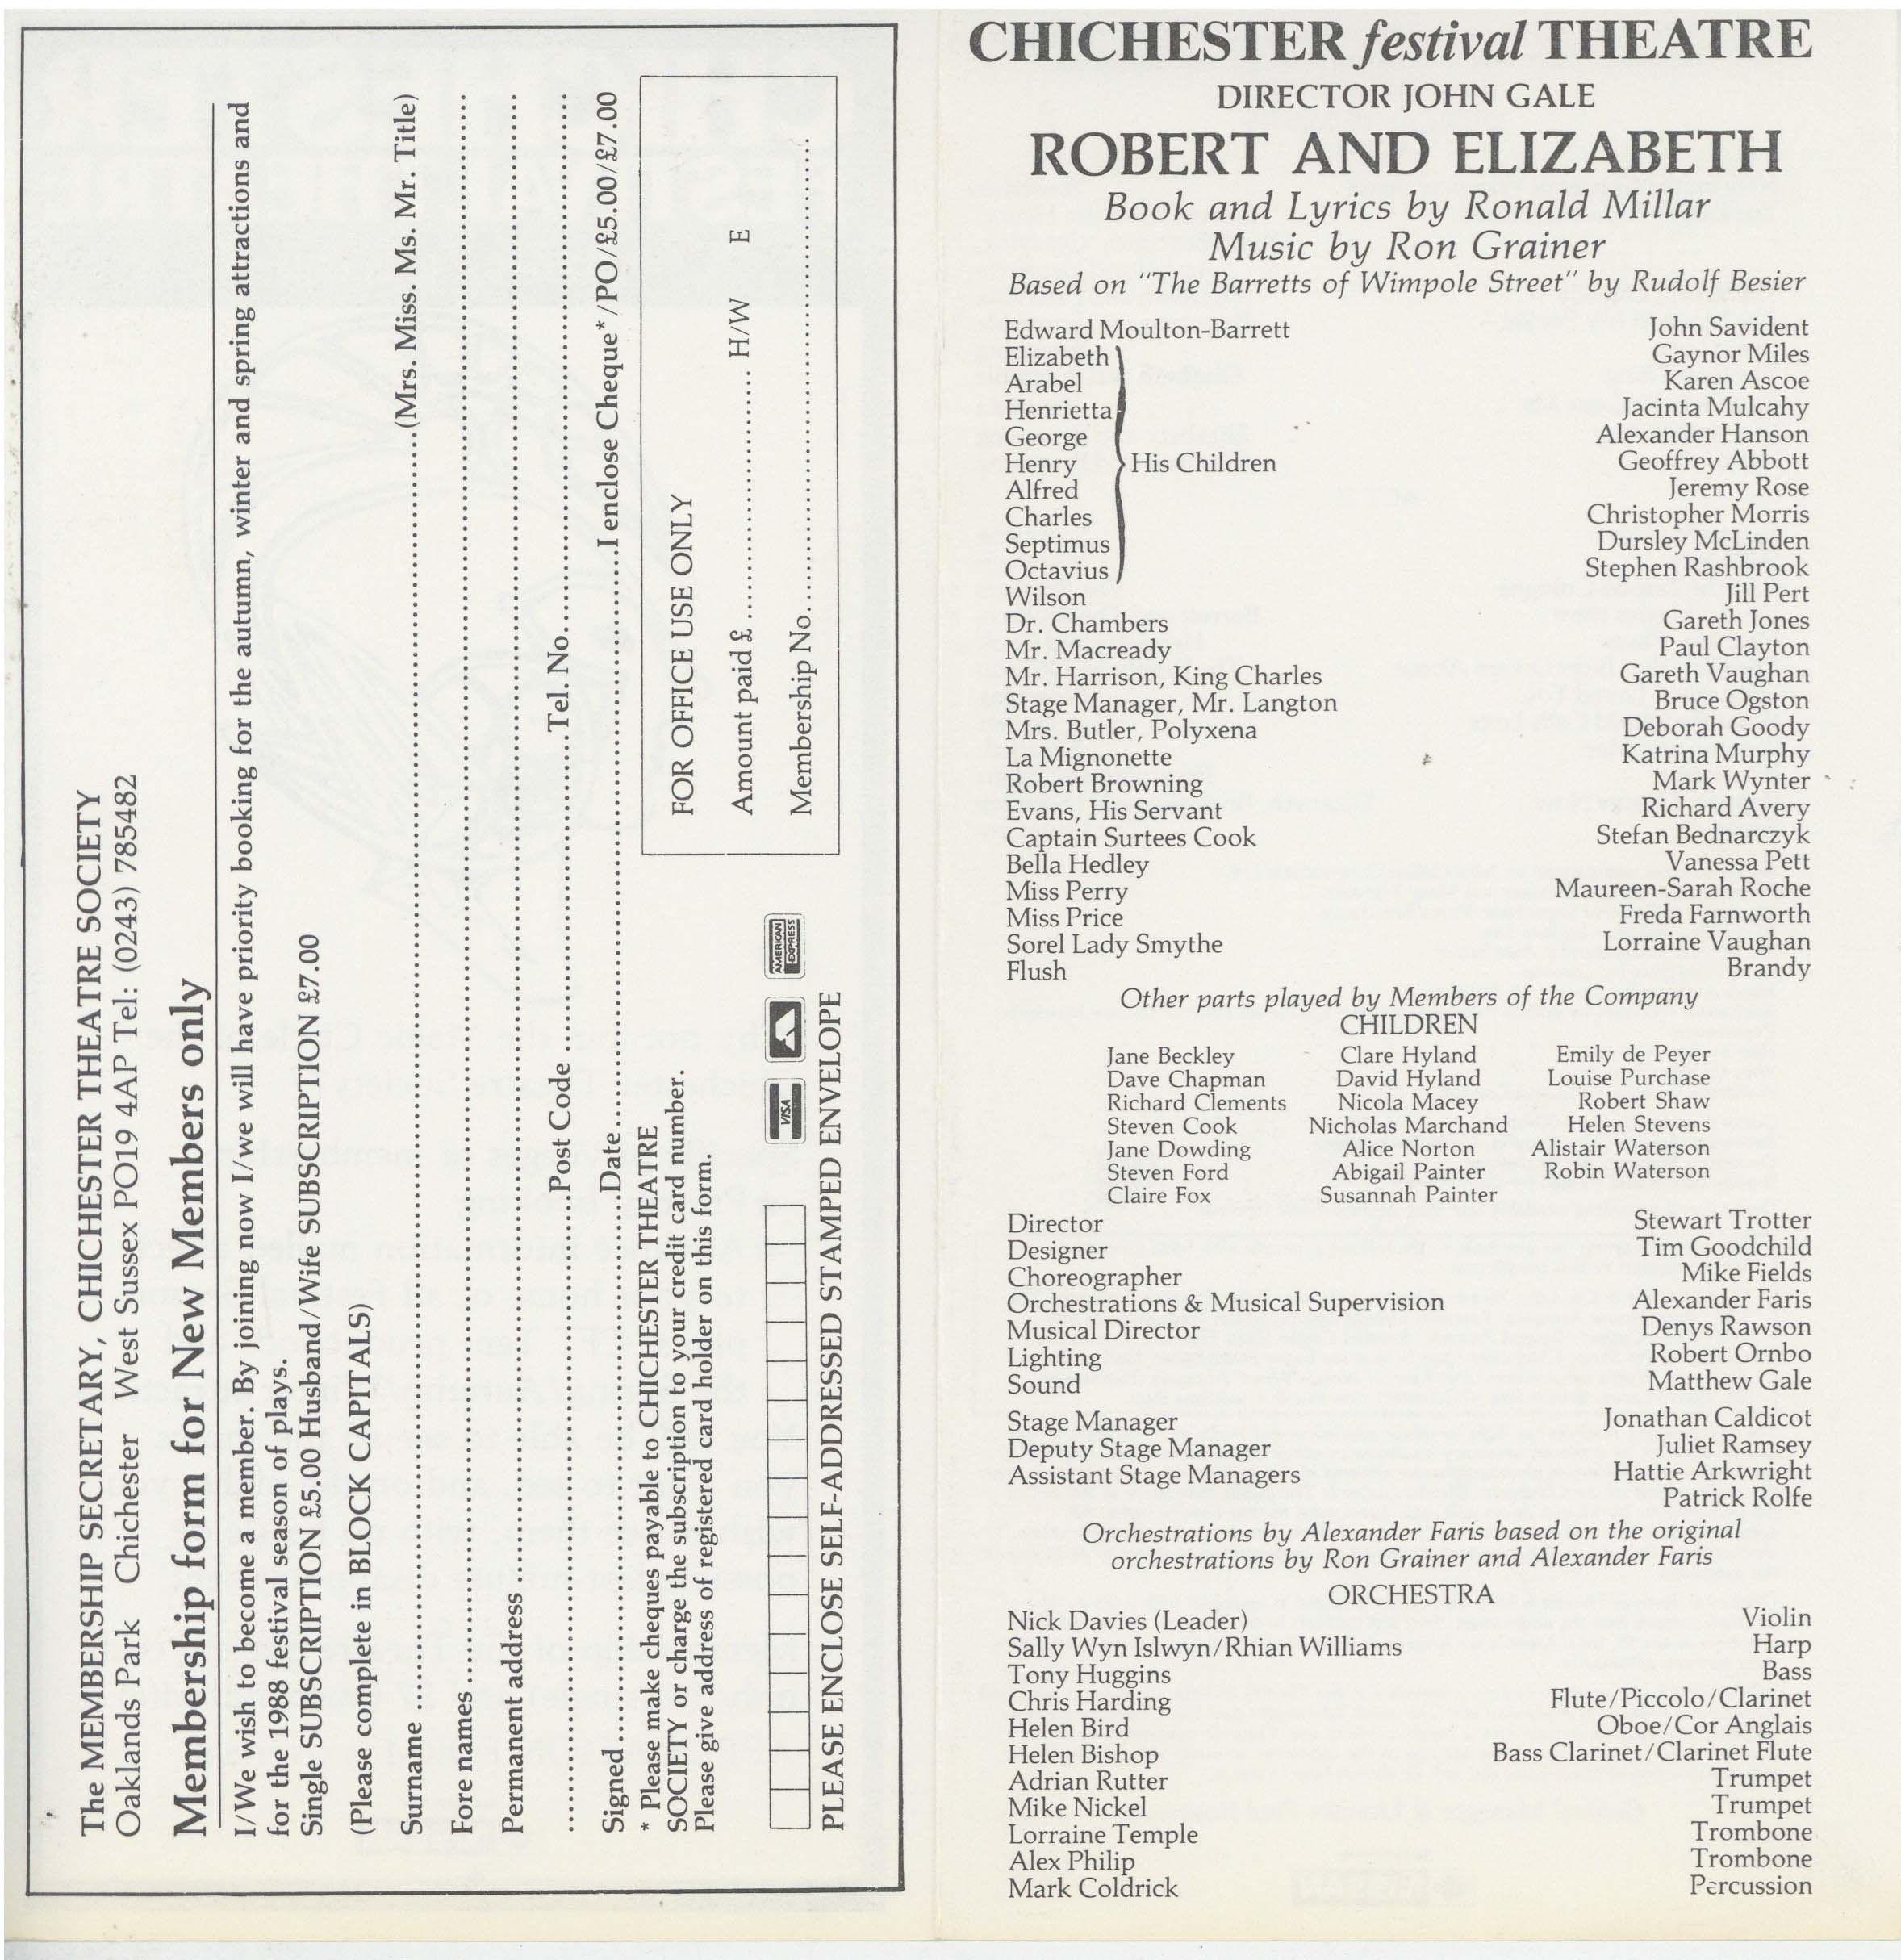 Cast List - Robert And Elizabeth - 1987 - 2 of 2